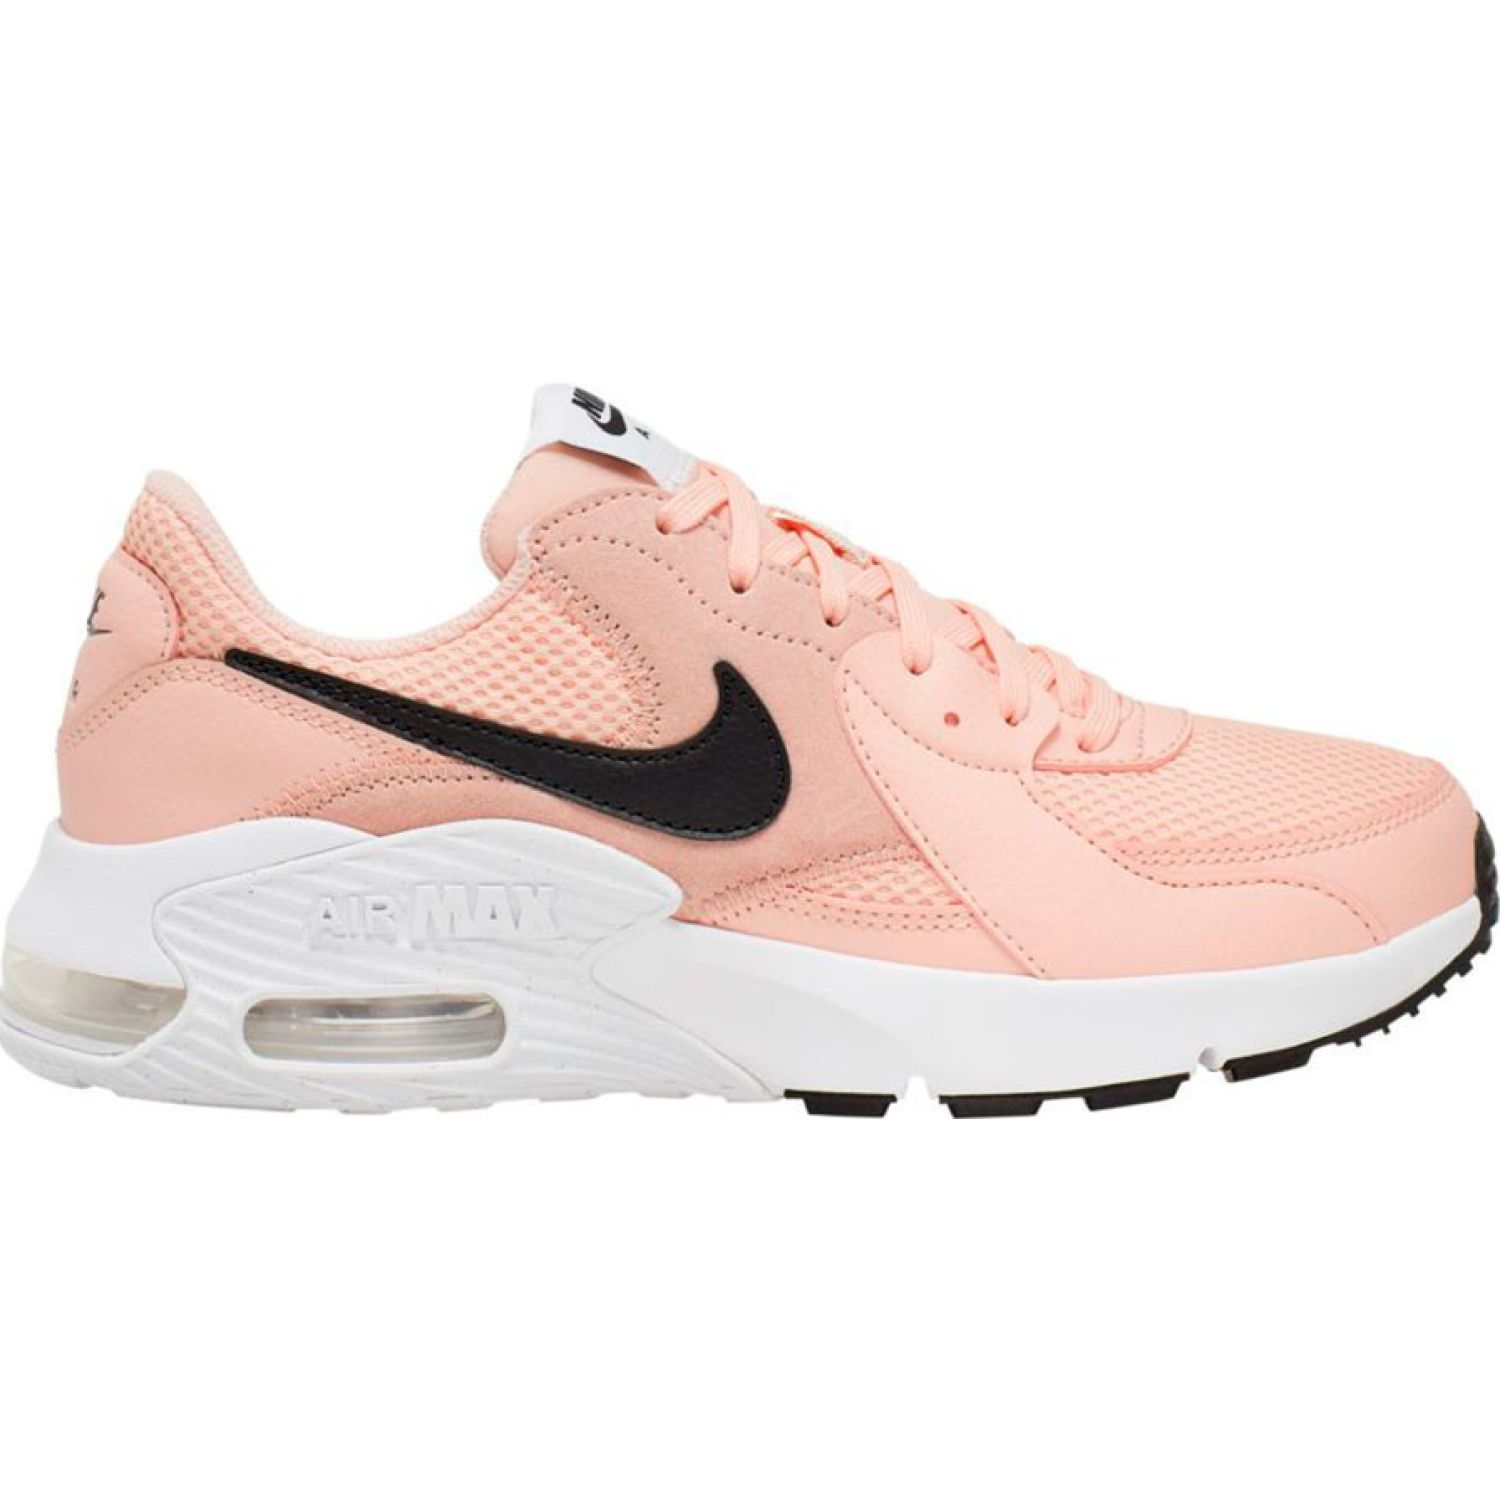 Nike Wmns Nike Air Max Excee Rosado Walking